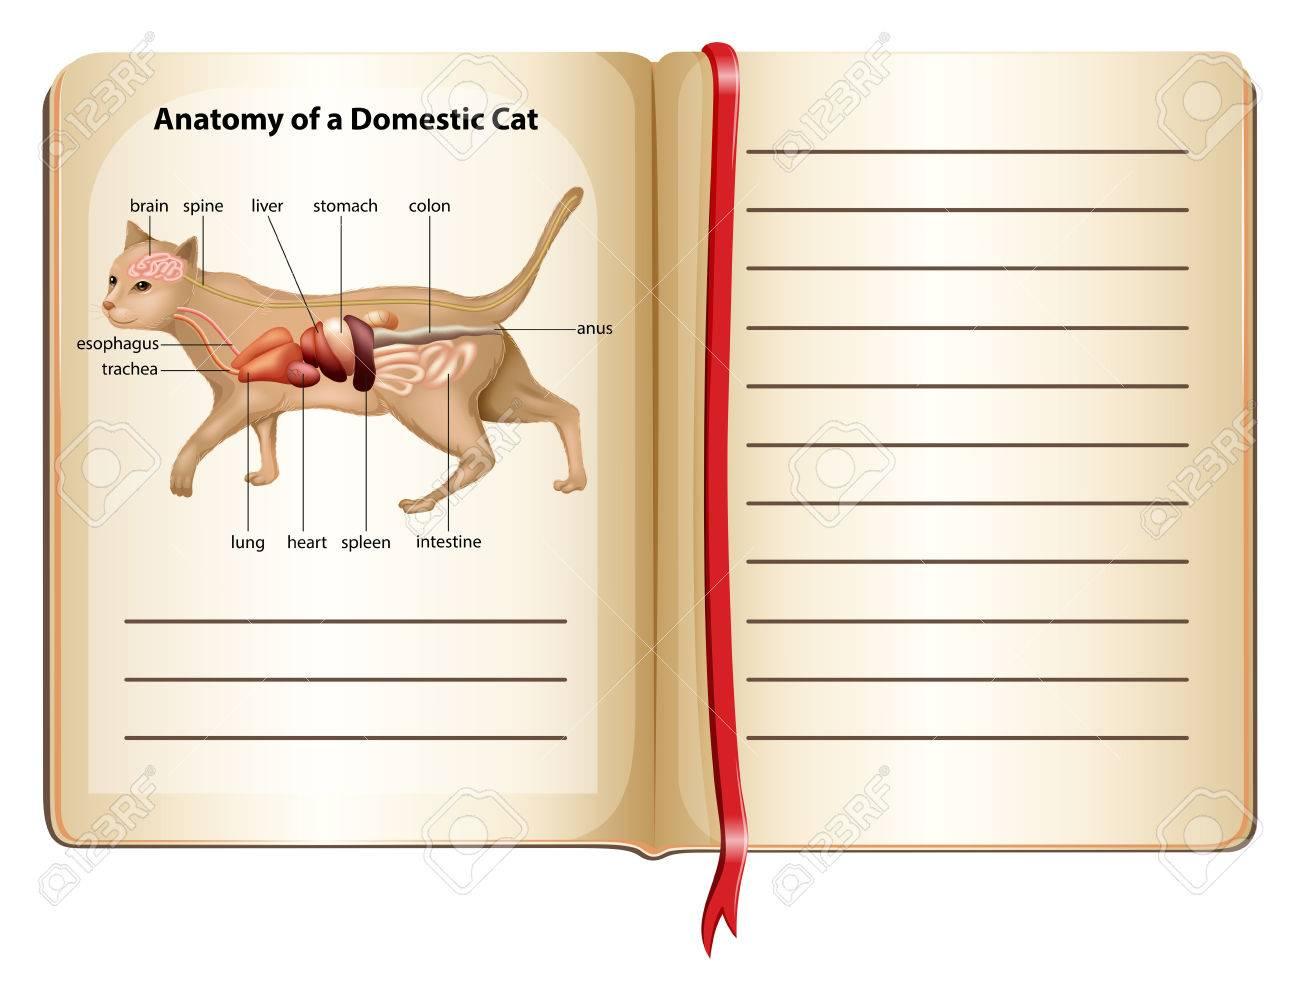 Anatomy Of A Domestic Cat Illustration Royalty Free Cliparts ...